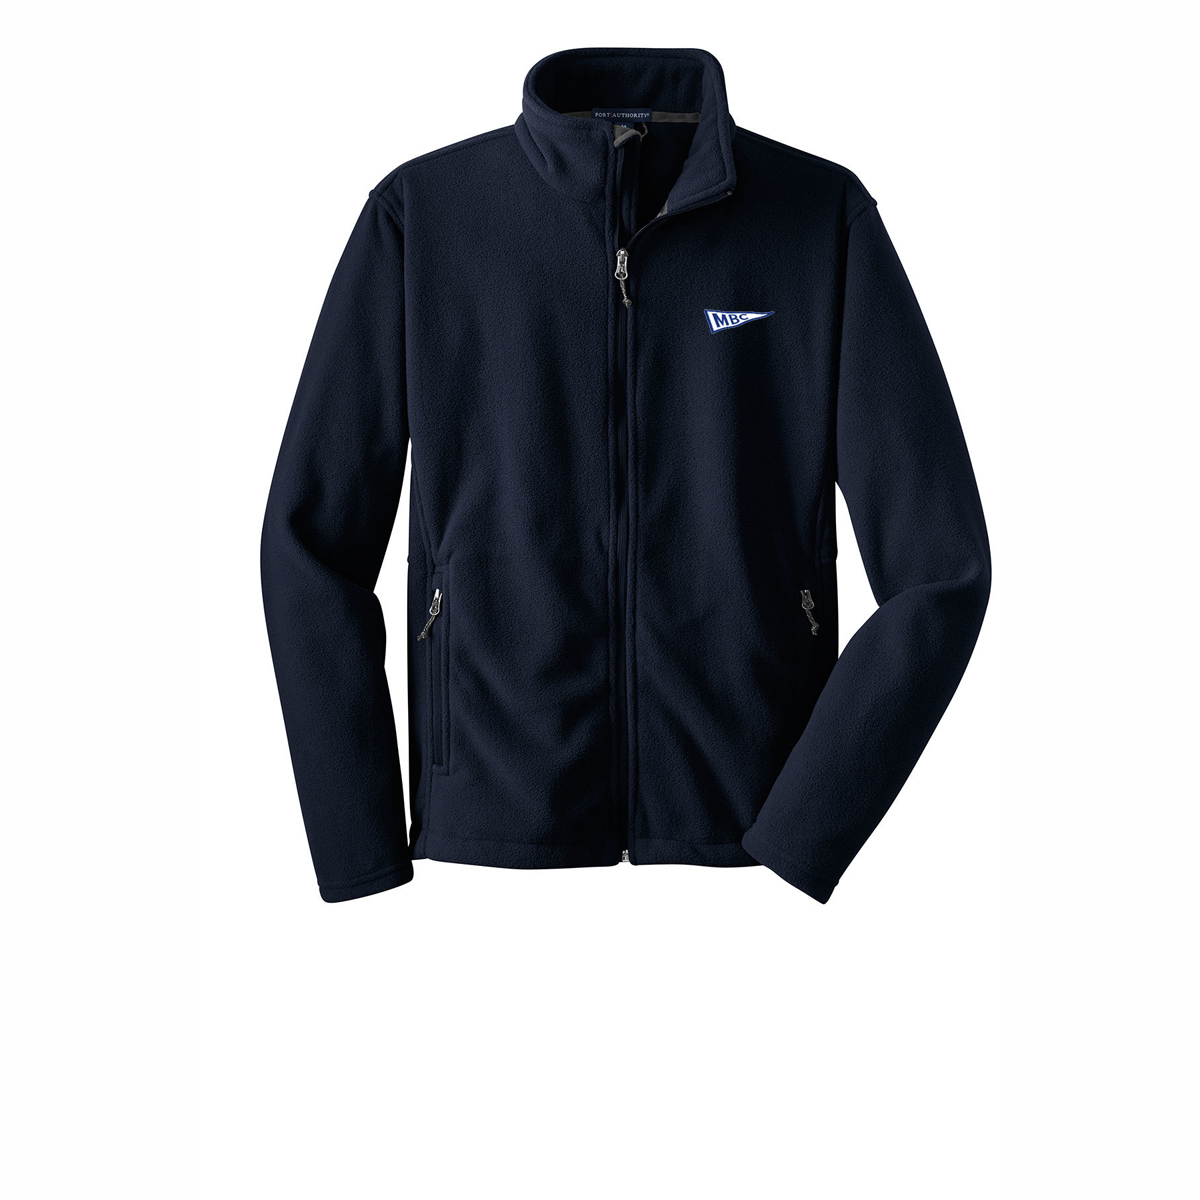 MONMOUTH BC M'S VALUE FLEECE JKT